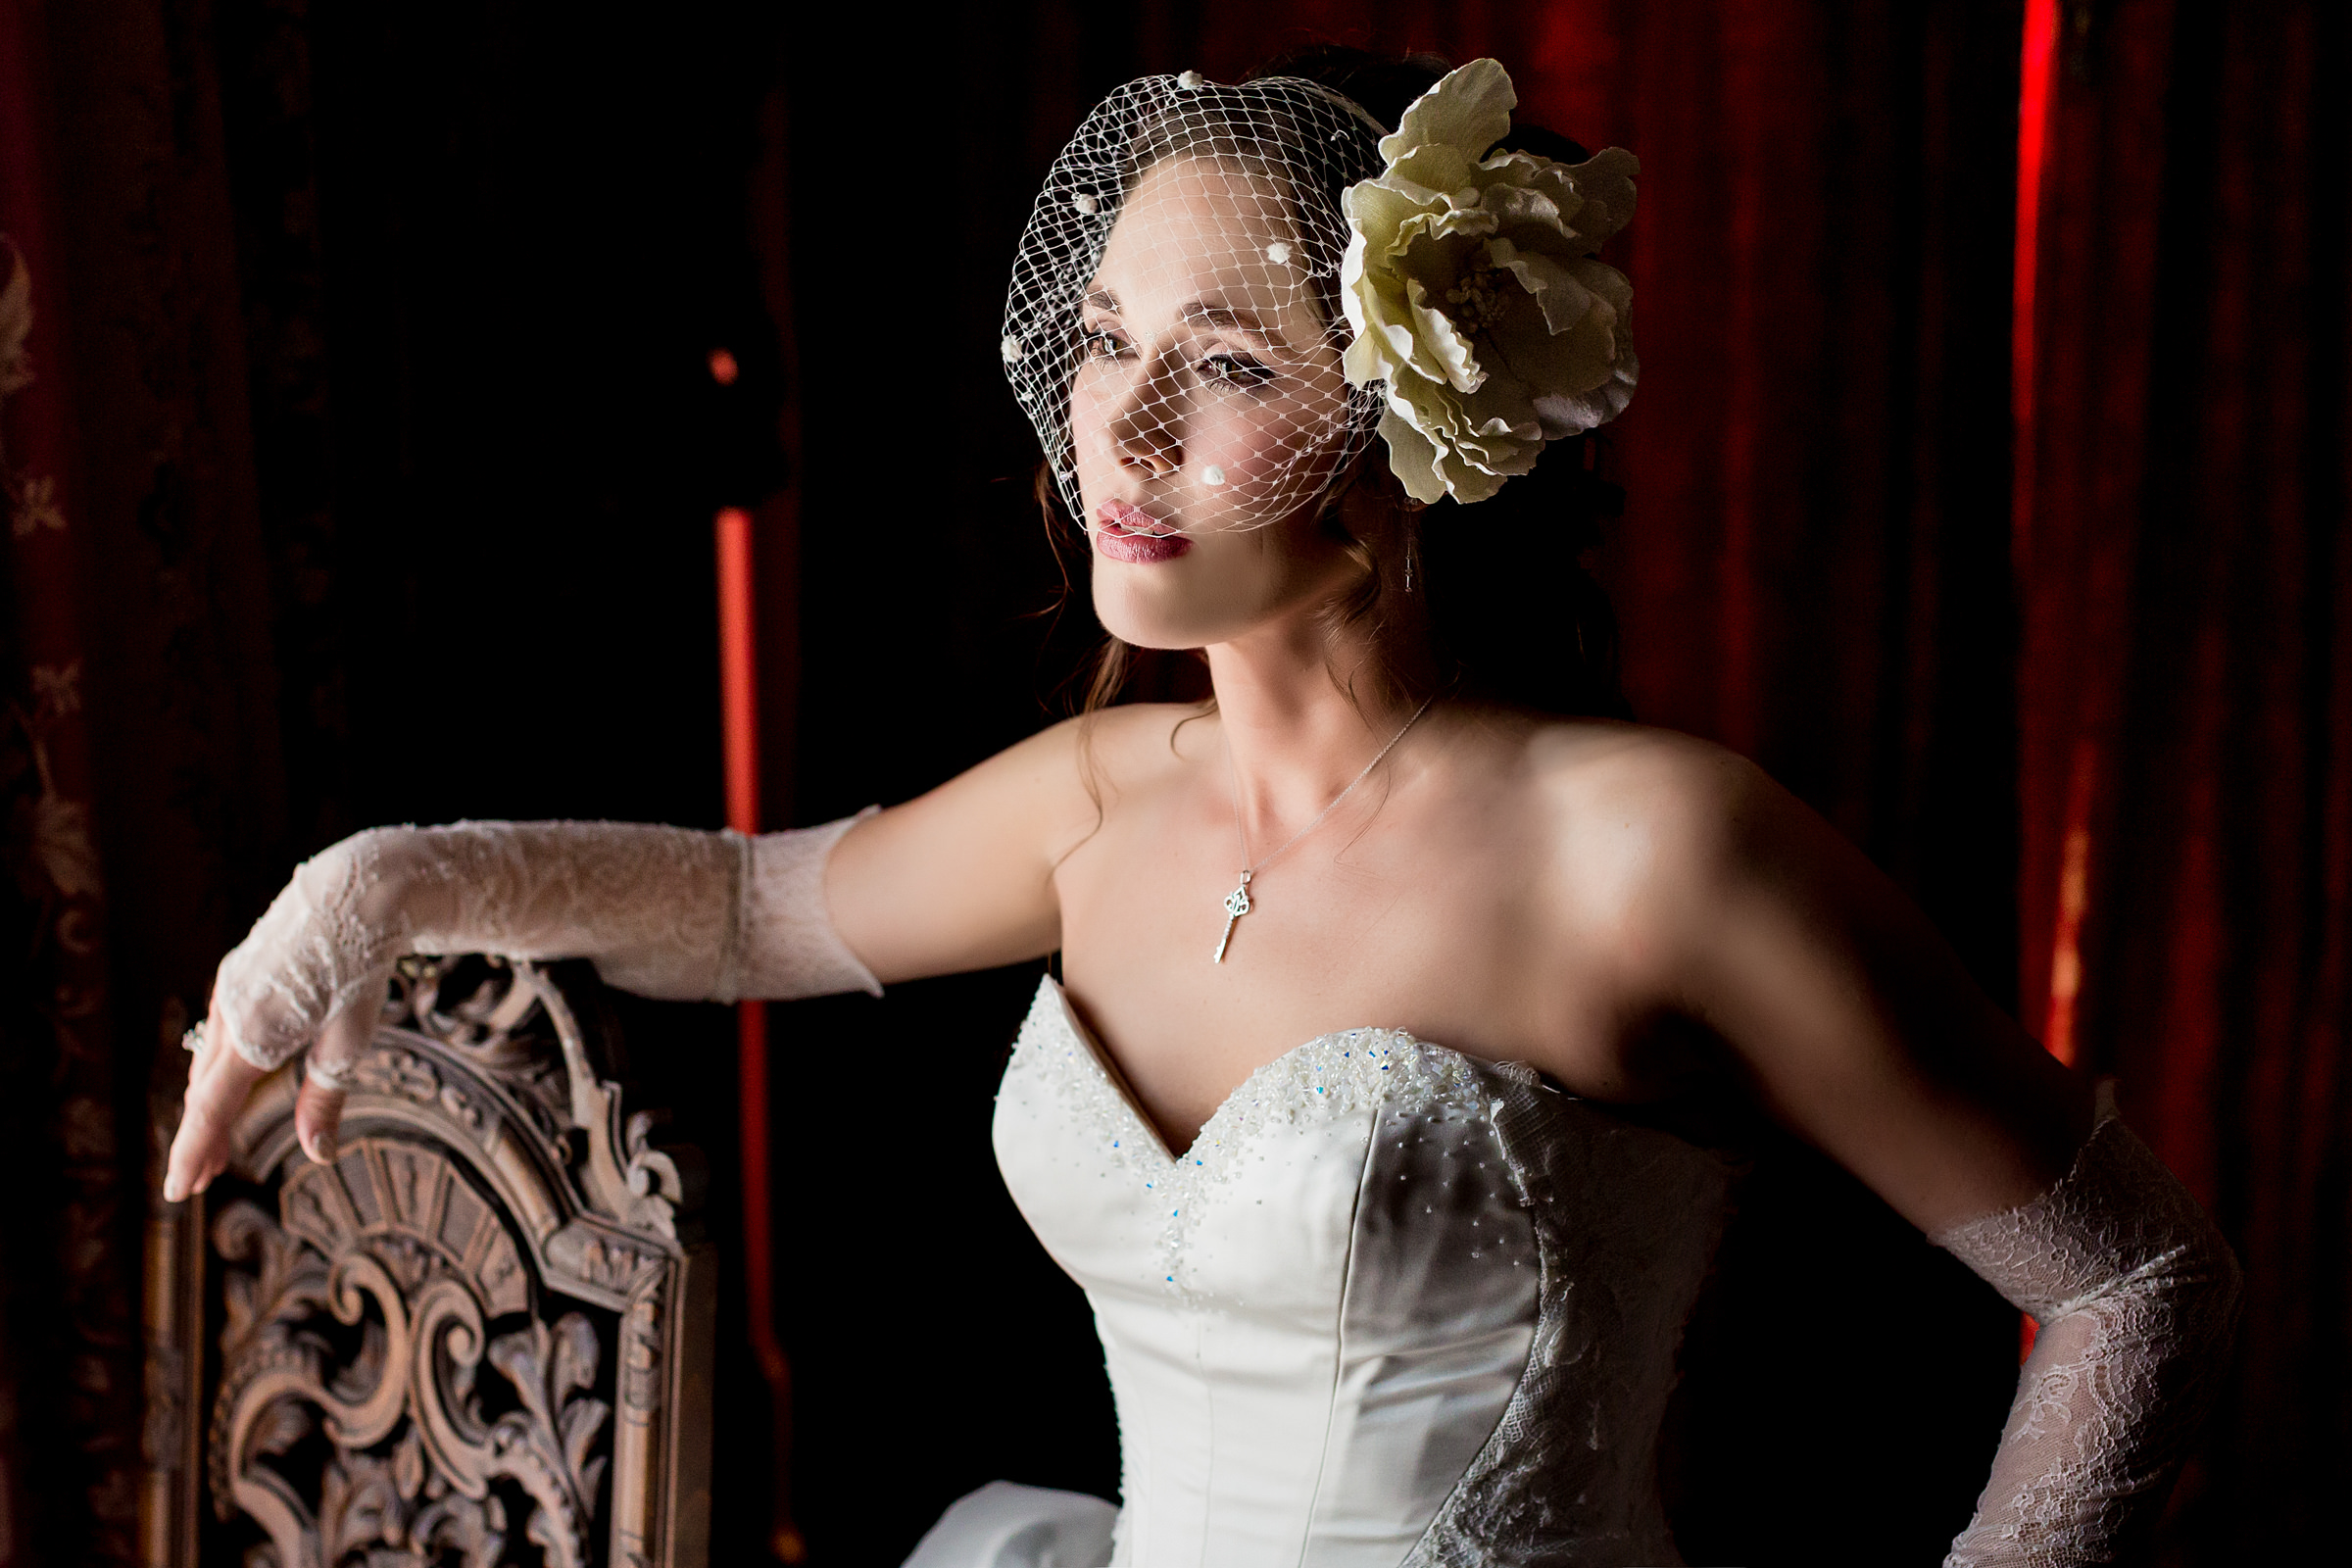 Bride in birdcage veil and lace gloves - photo by Procopio Photography - D.C.